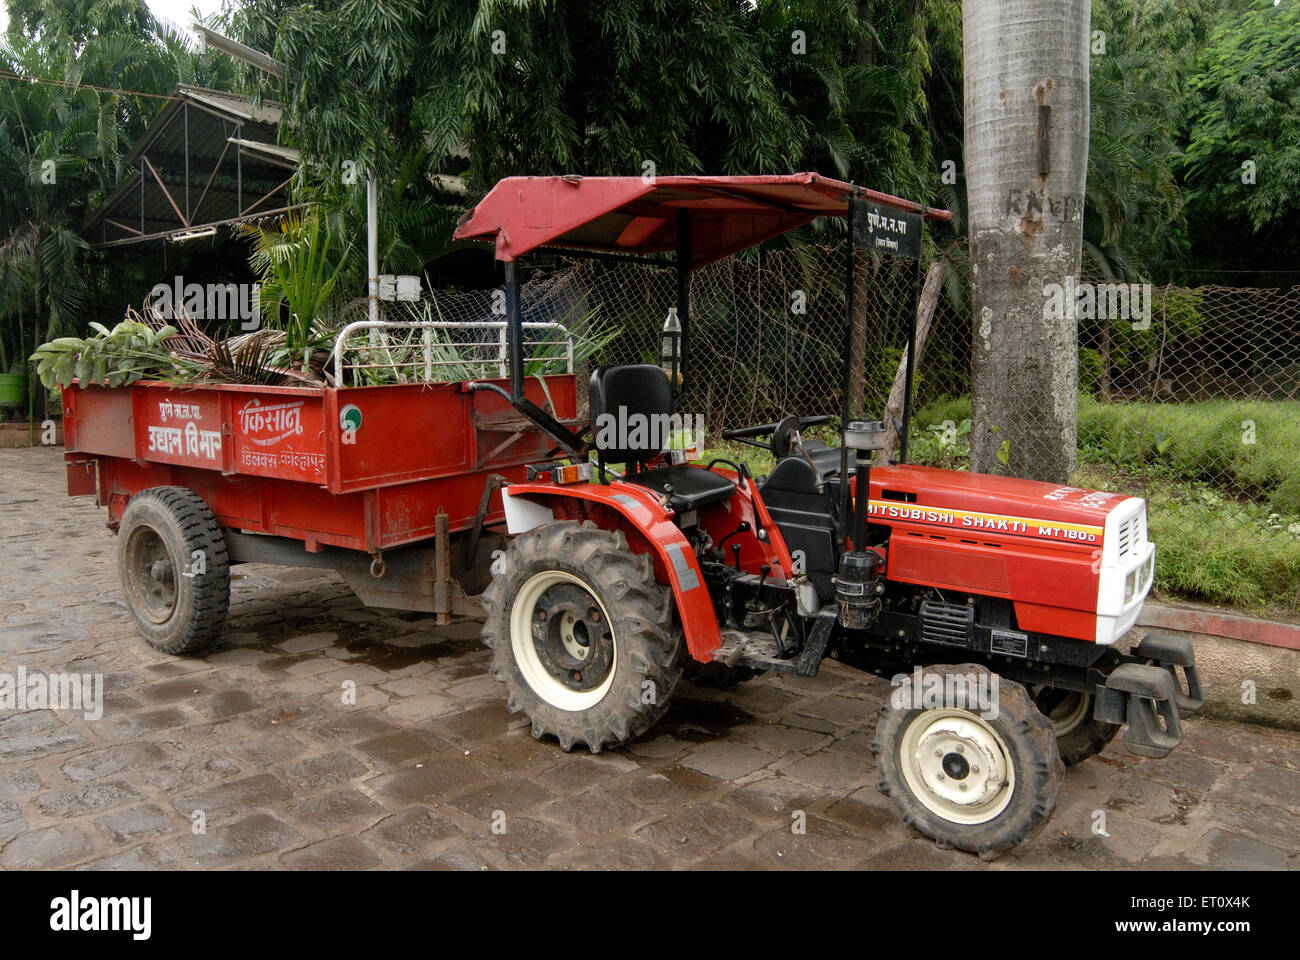 Red colour tractor ; Mitsubishi Shakti MT 180 D with trolley at Saras Baug  ; Pune